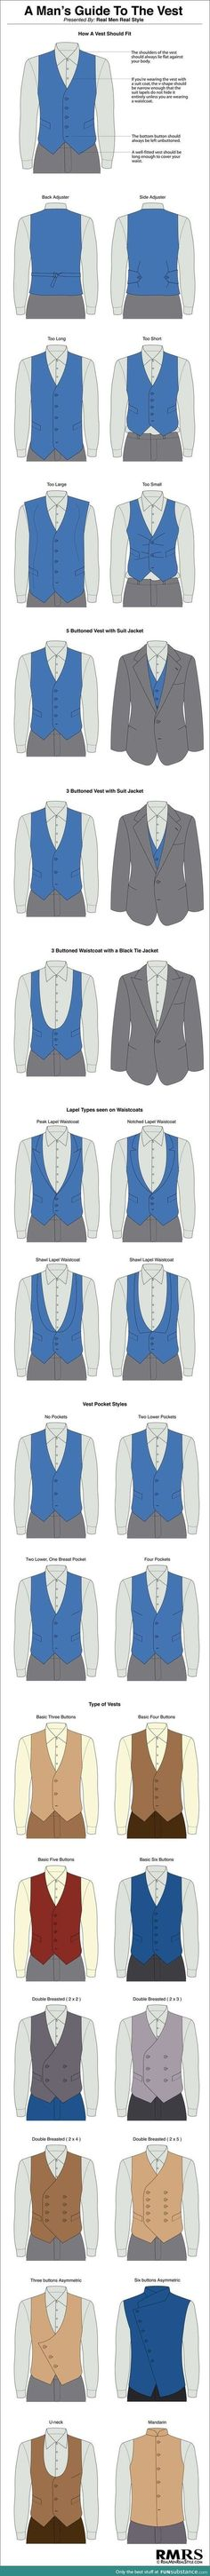 A man's guide to the vest